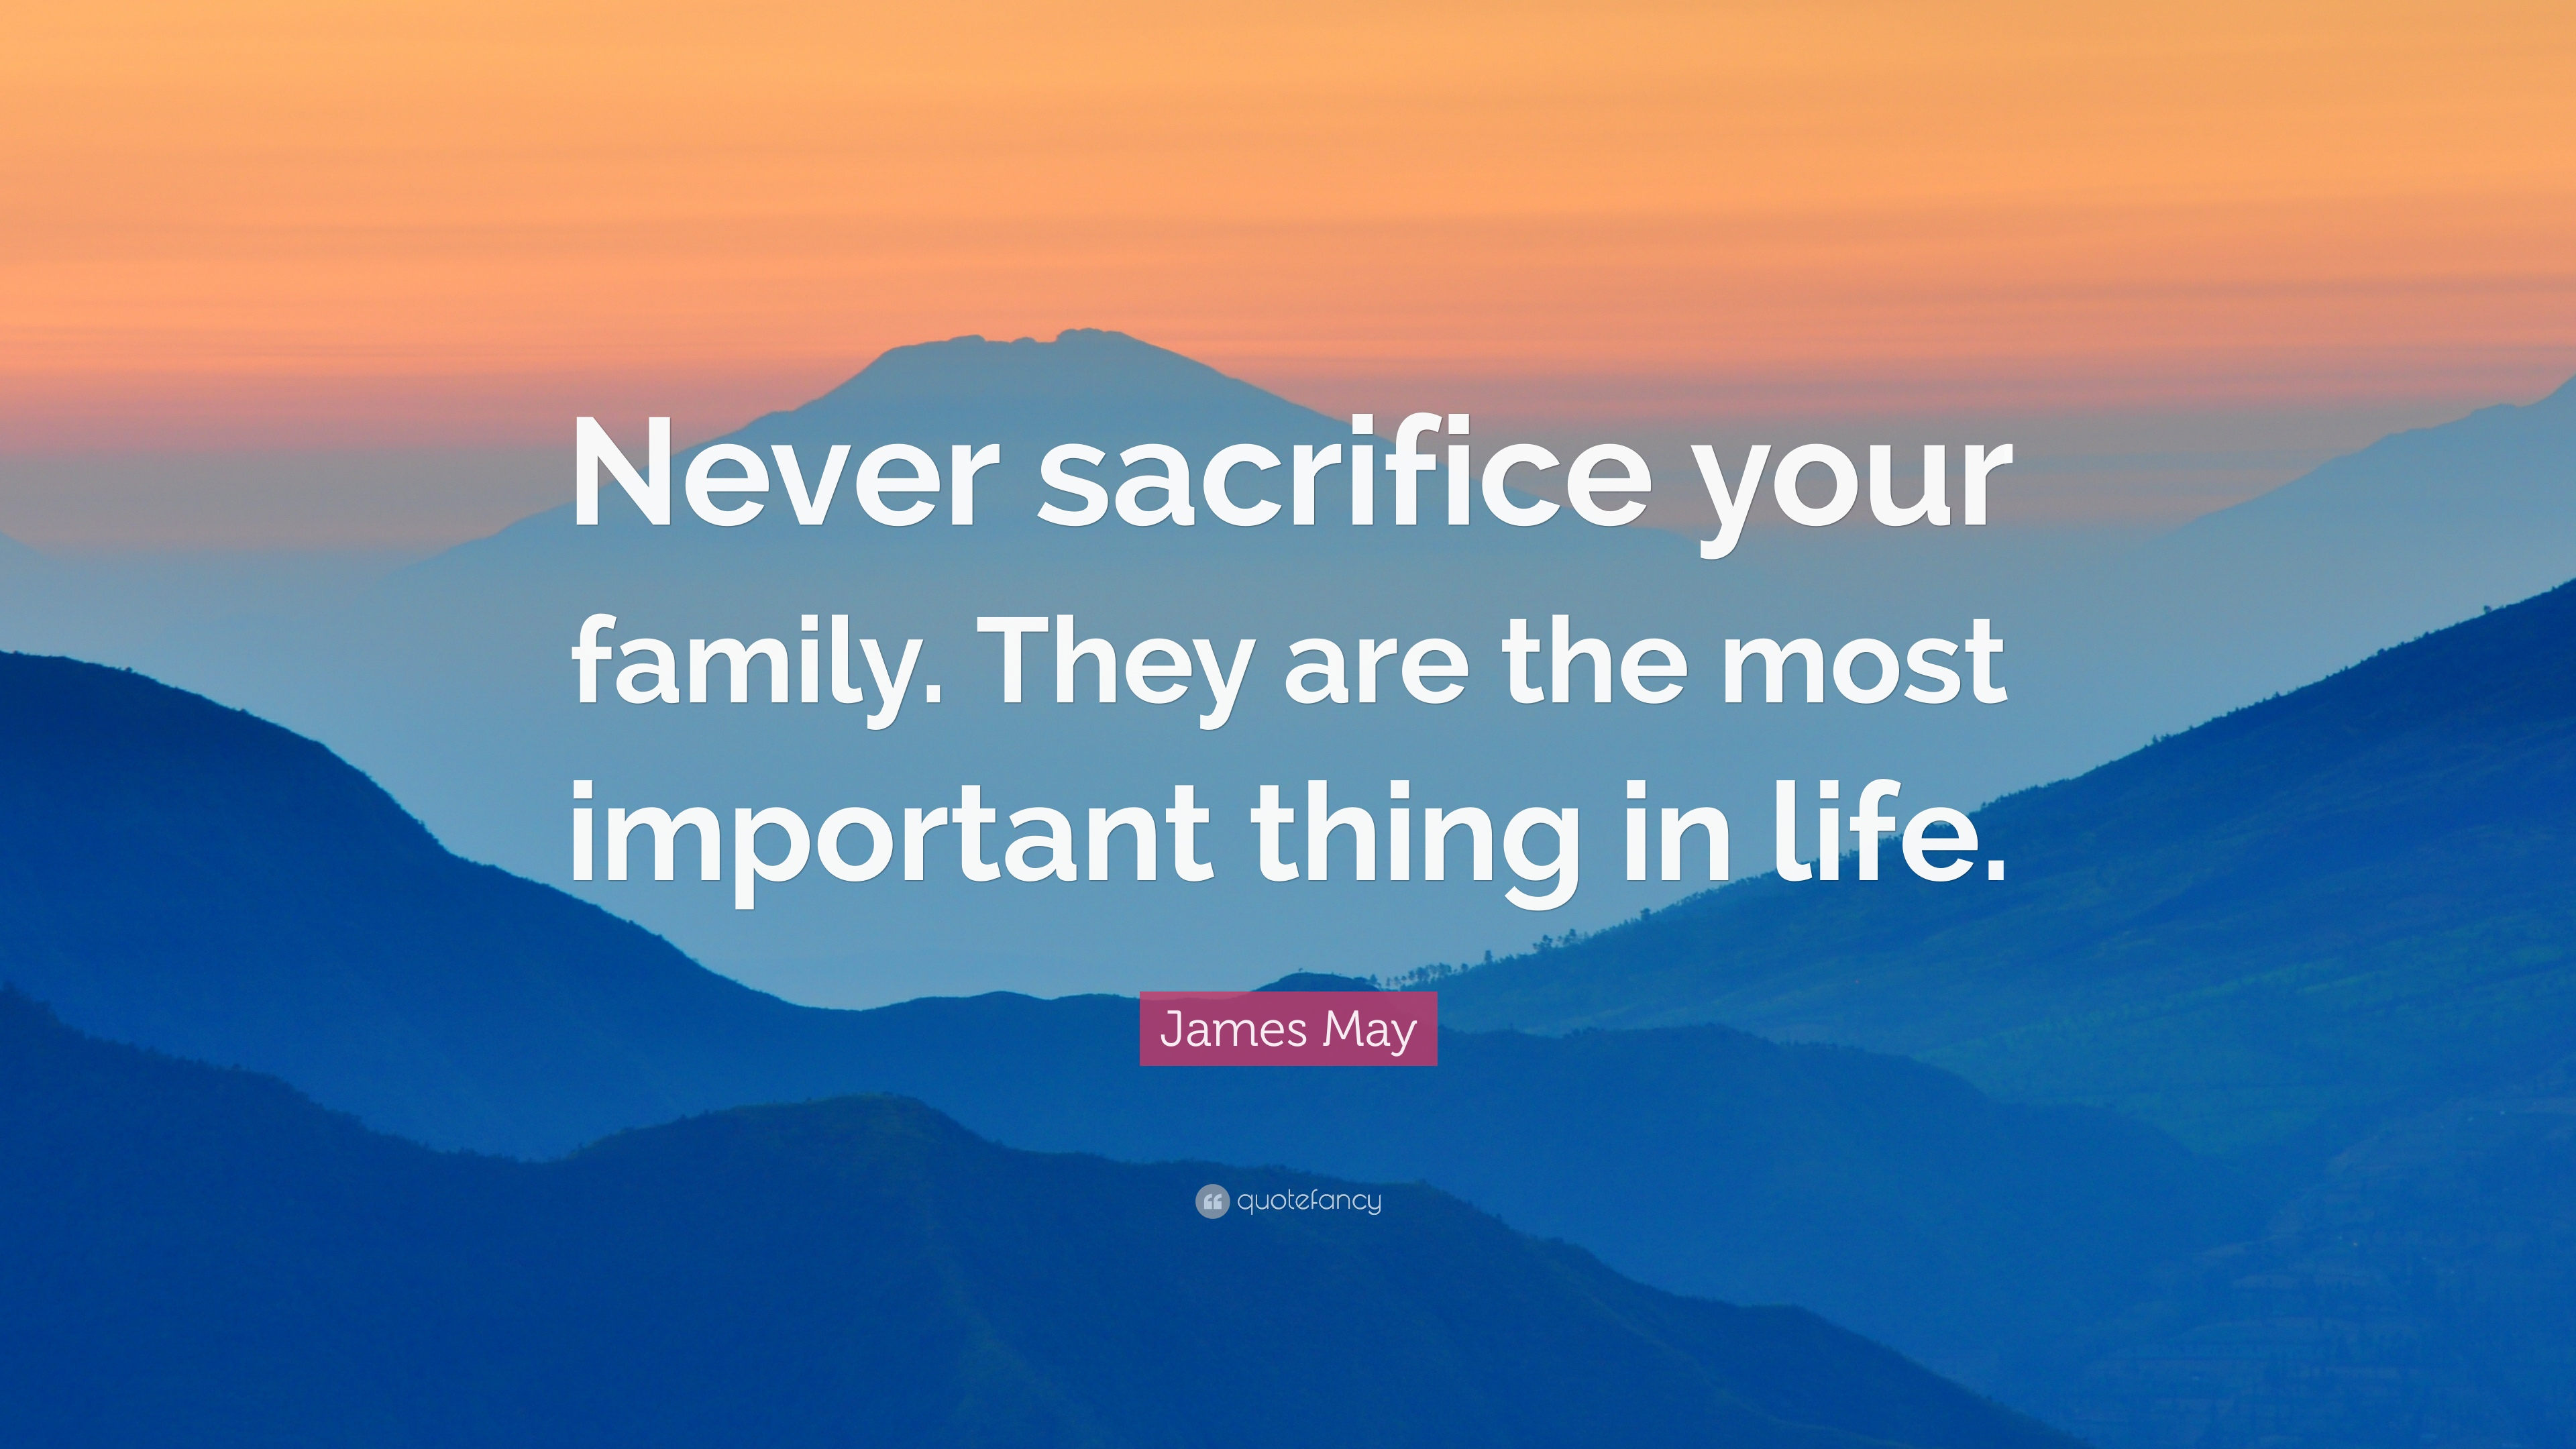 the most important thing in life is family